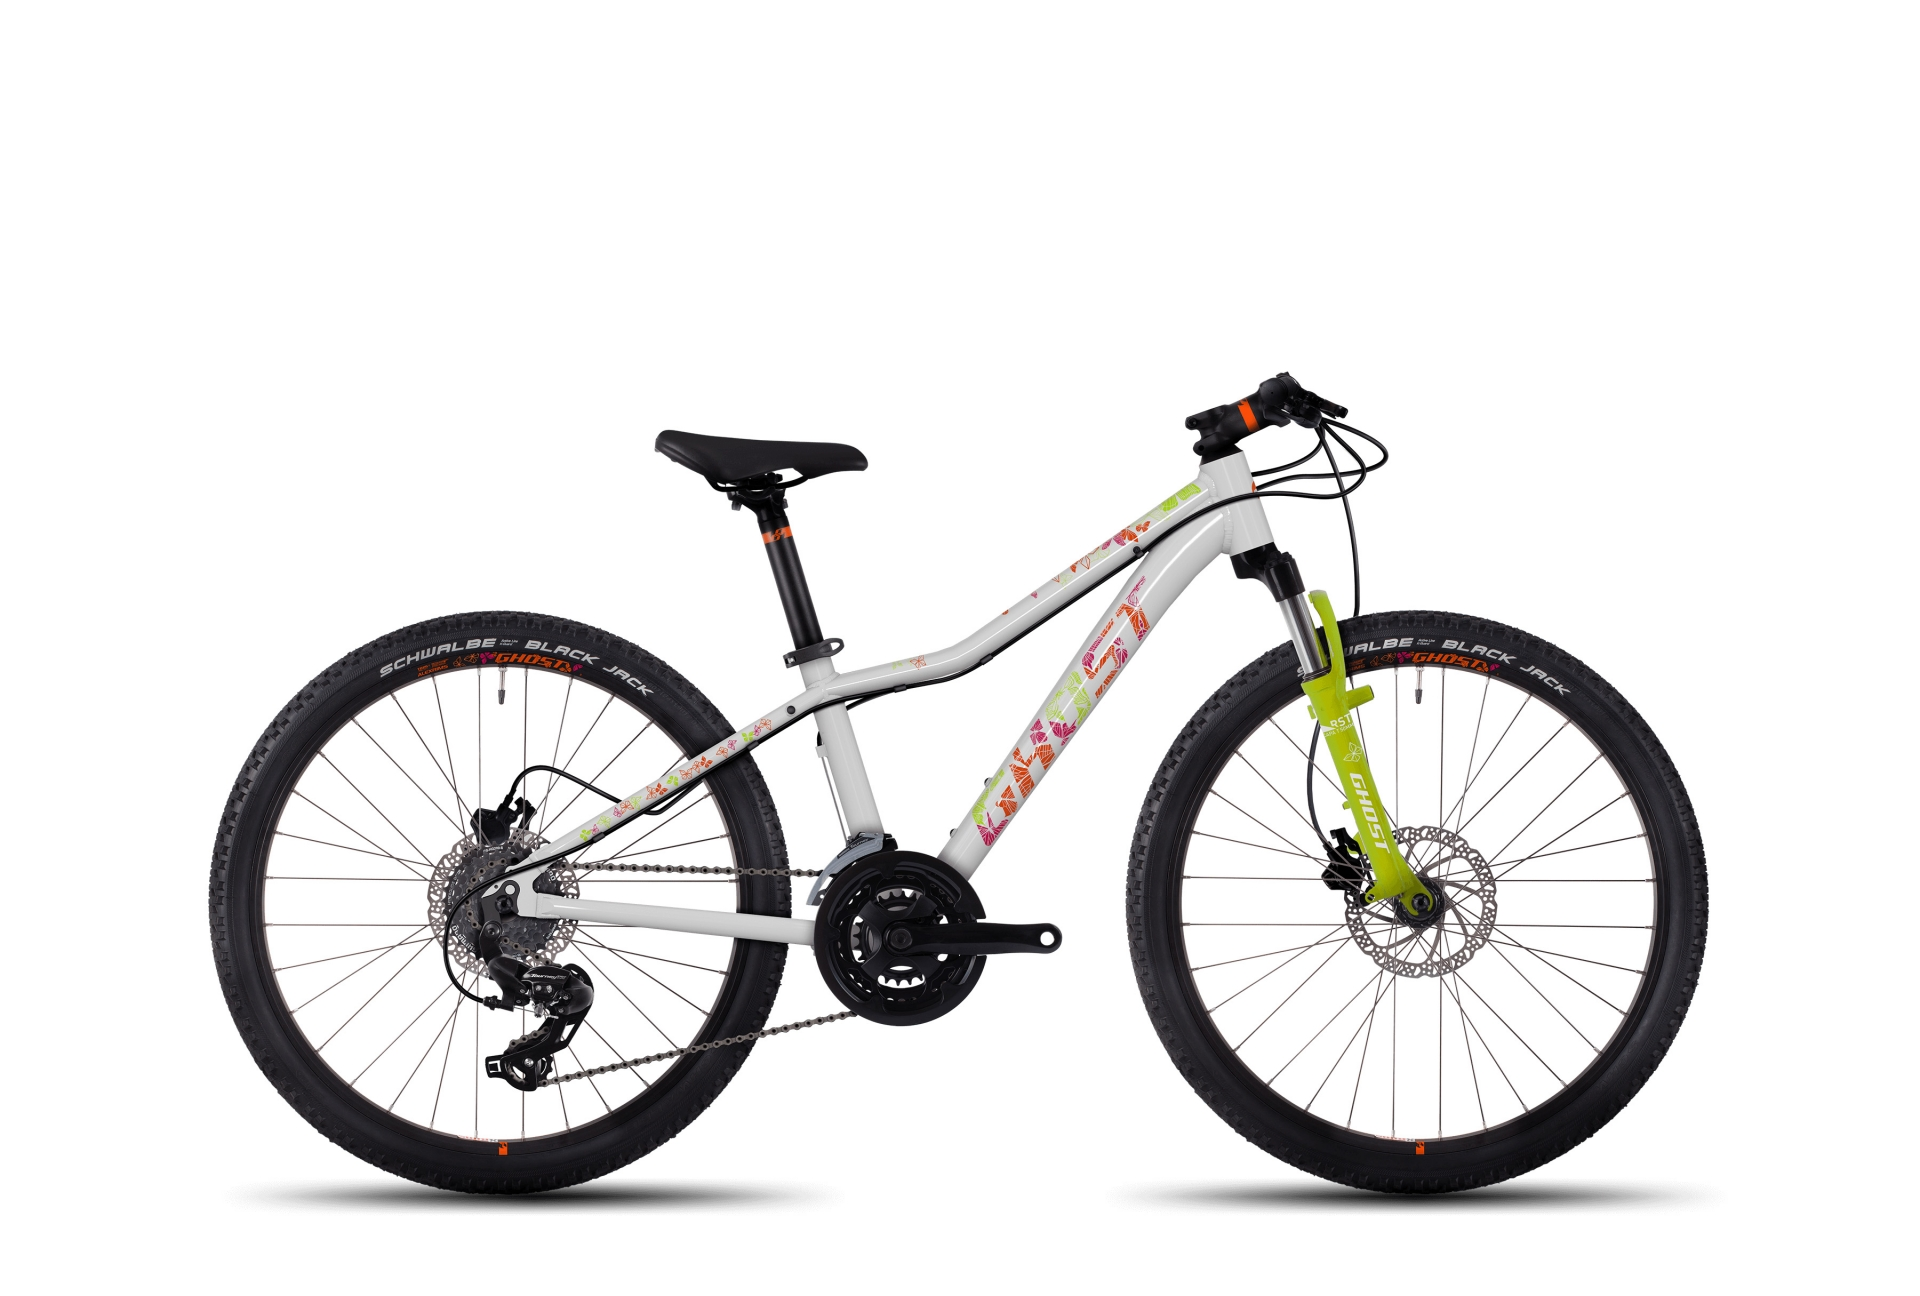 VTT junior Ghost Lanao 4 AL 24 Disc Blanc/Orange/Vert